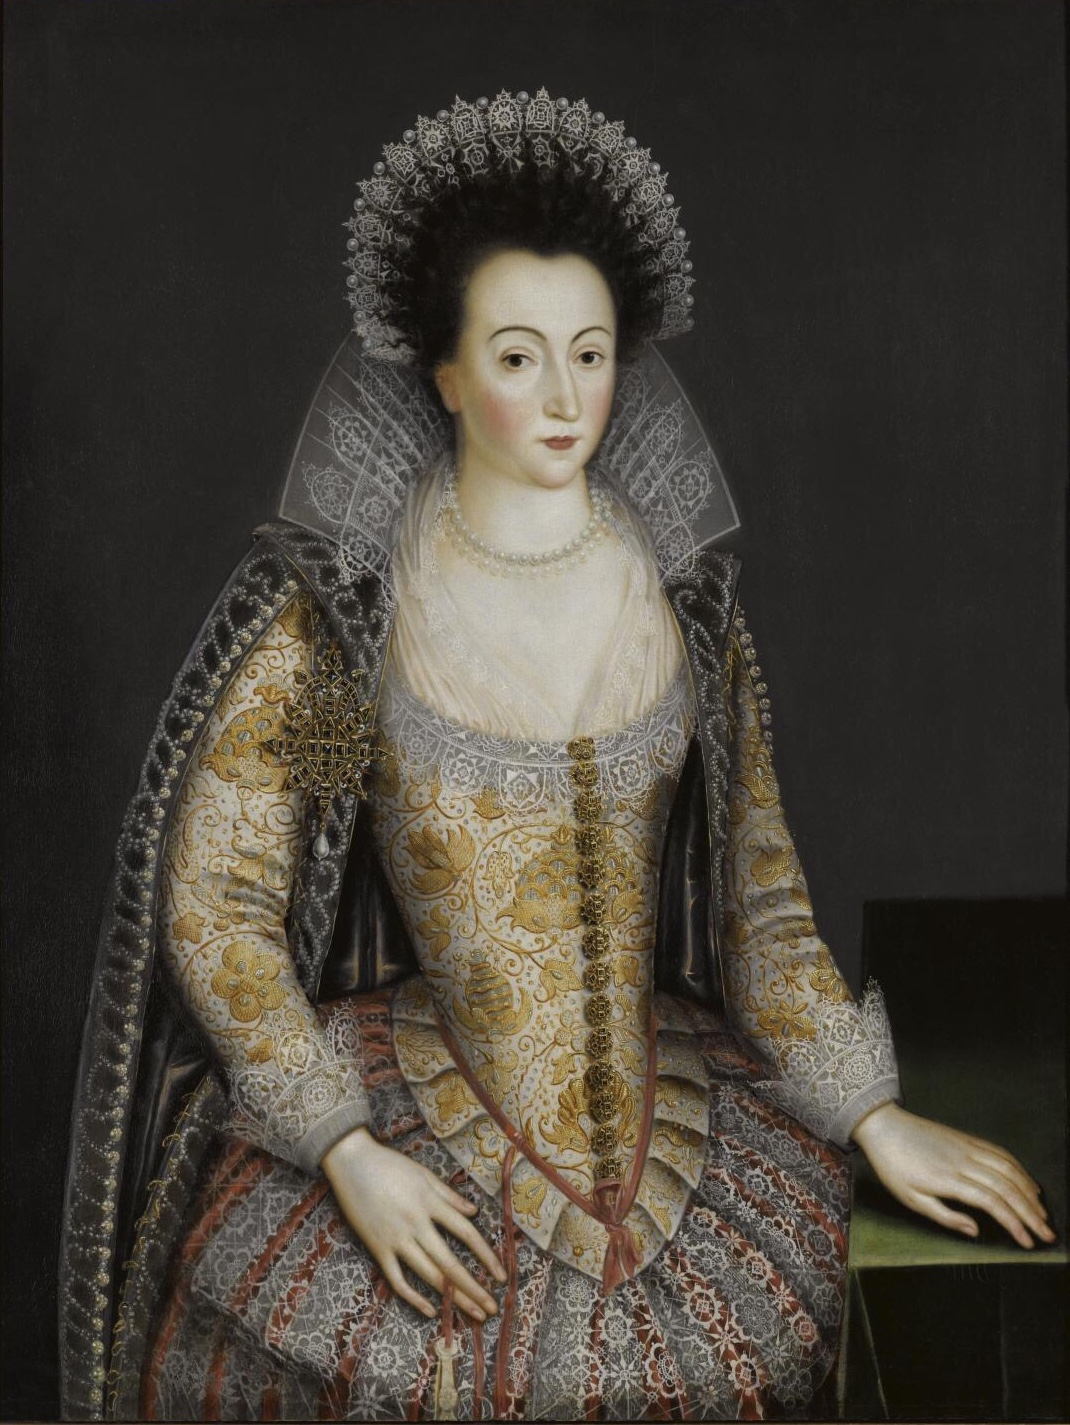 Portrait tentatively identified as Alice Spencer, painted by an unknown artist in the circle of [[Marcus Gheeraerts the Younger]]